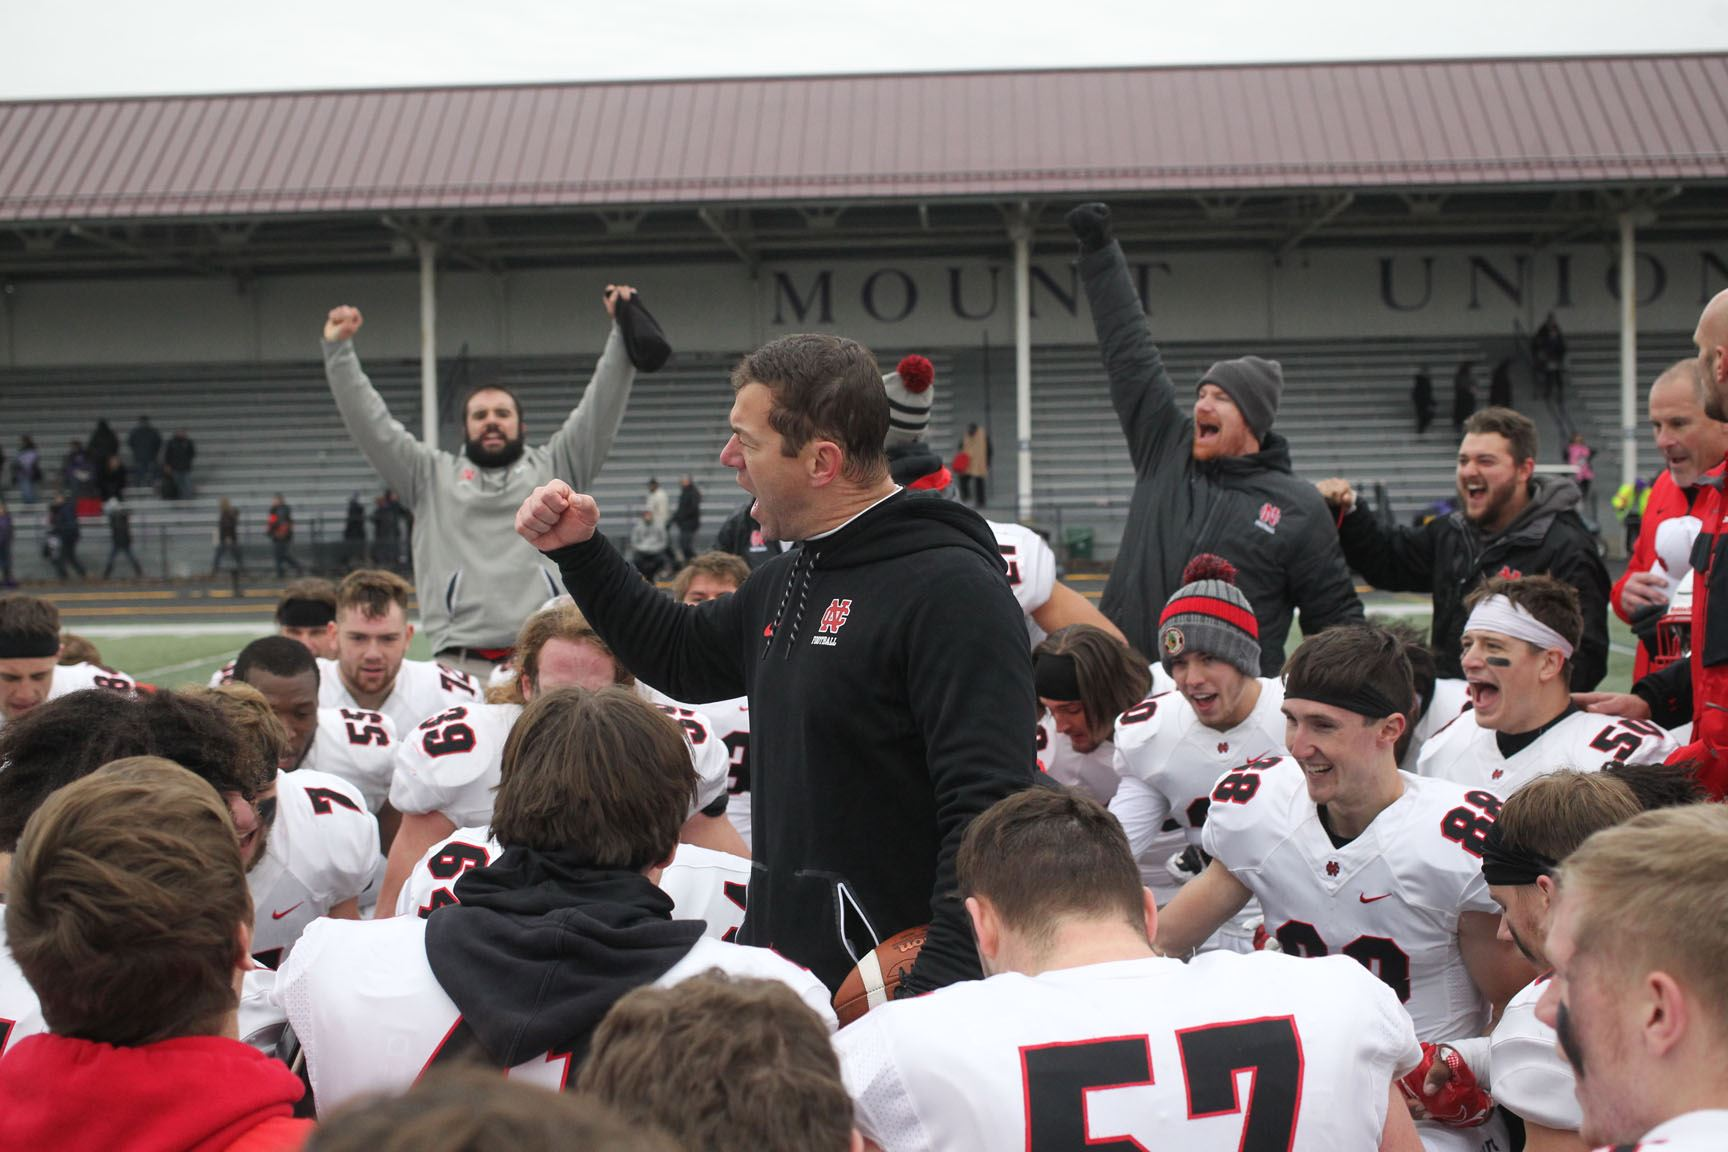 North Central Ill Makes History Knocking Off Mount Union In Second Round Shootout Ncaa Com